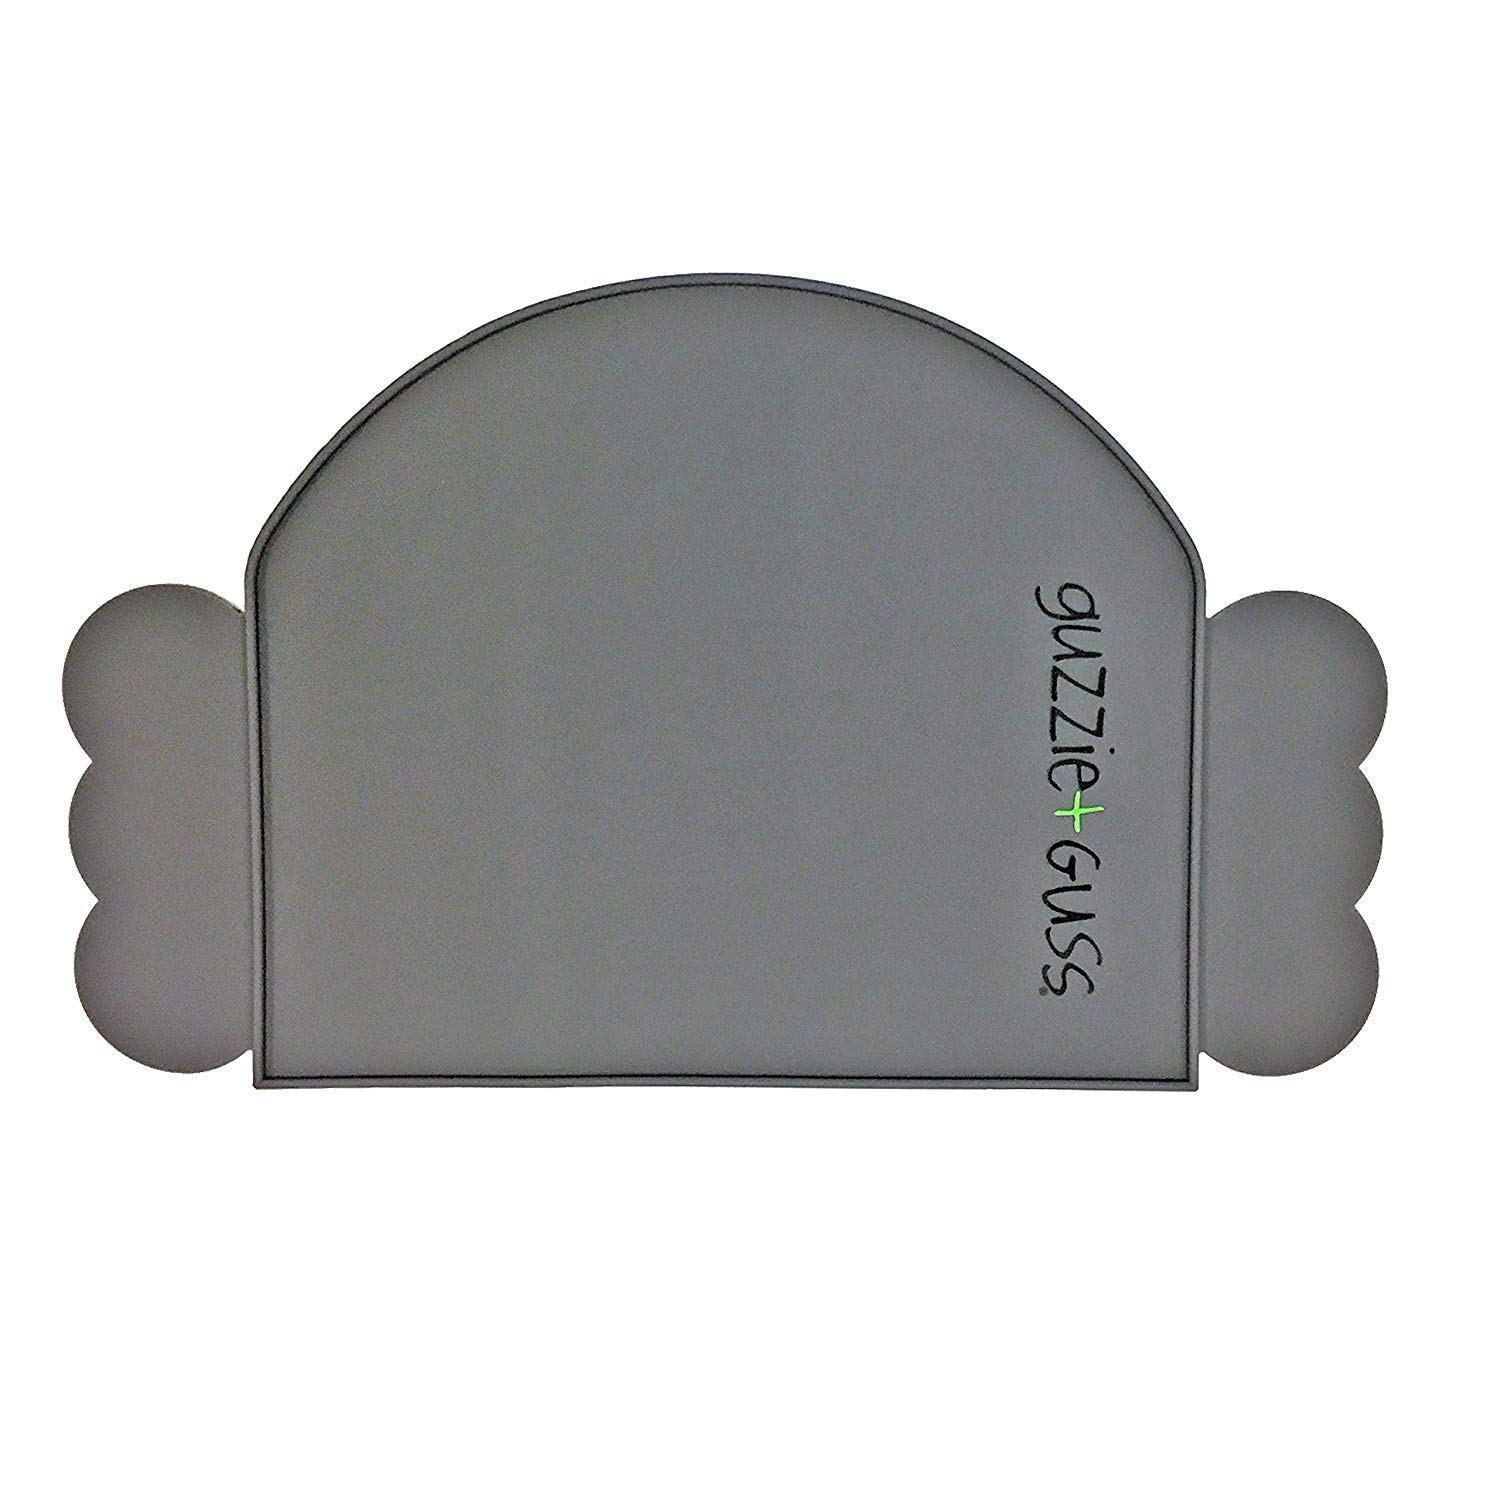 guzzie+Guss Perch Silicone Table Chair Placemat, Made of Food Grade Silicone, Easy to Clean, Dishwasher Safe, Grey